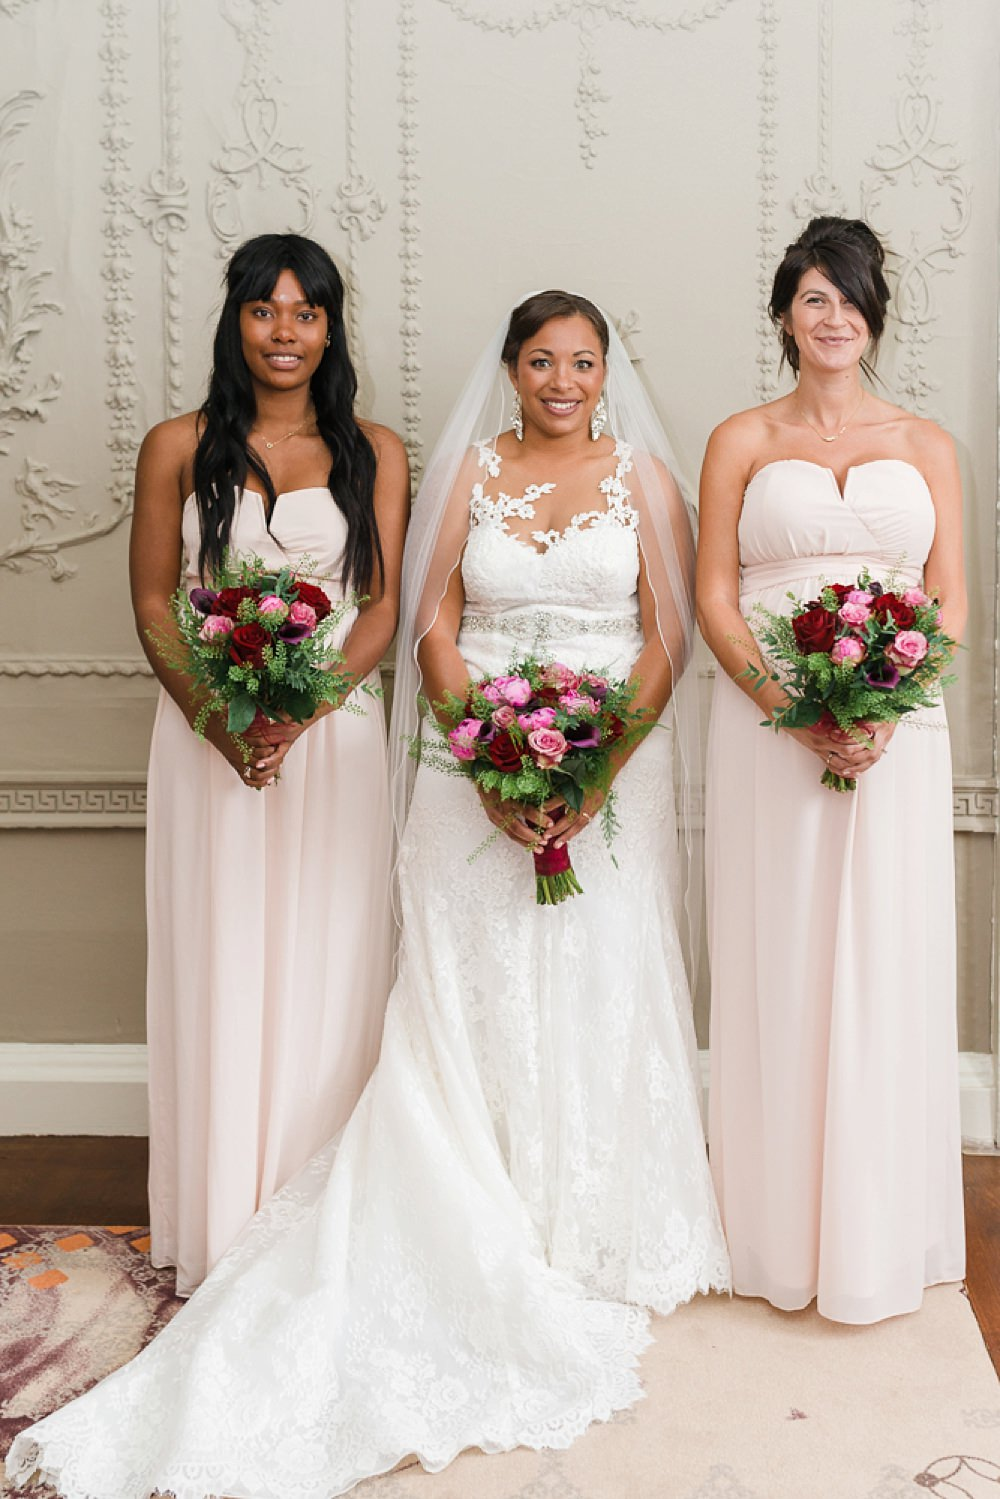 Bride Bridal La Sposa Fit & Flare Lace Dress Gown Floor Length Veil Pink Red Bouquet Pink Strapless Bridesmaids Stoke Place Wedding Hannah McClune Photography